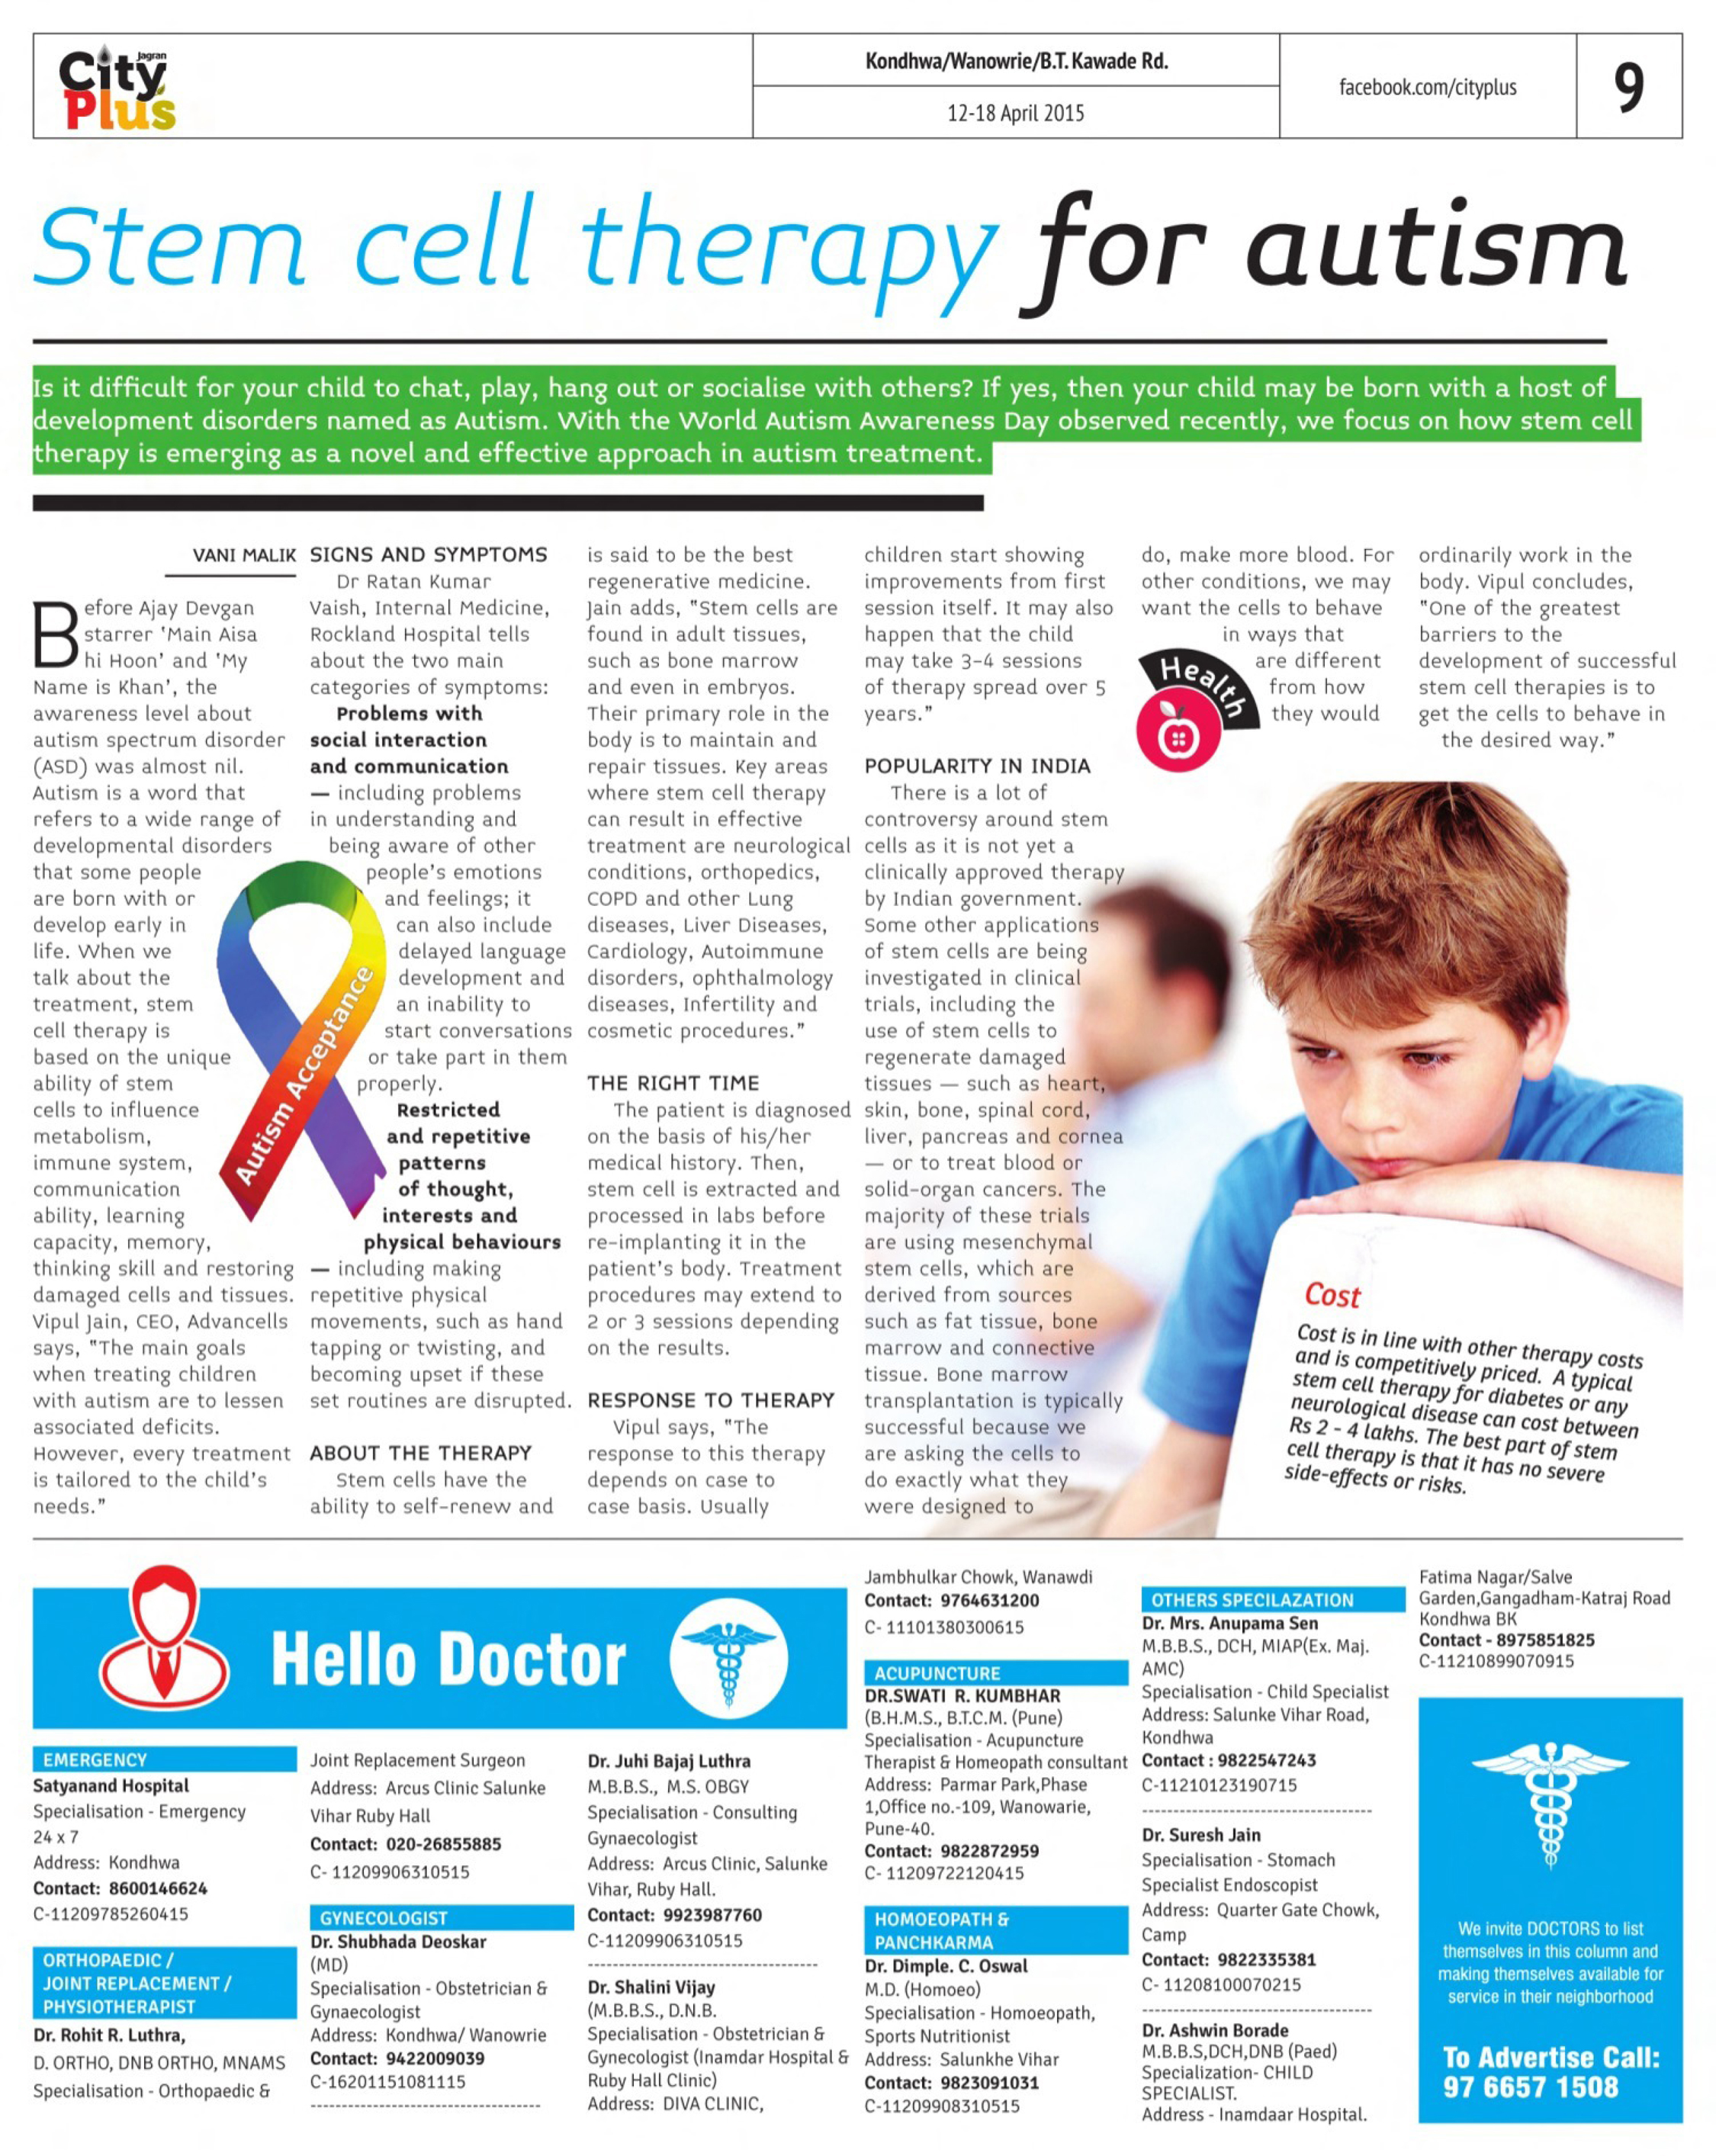 Stem Cell Therapy For Autism In Pune Advancells